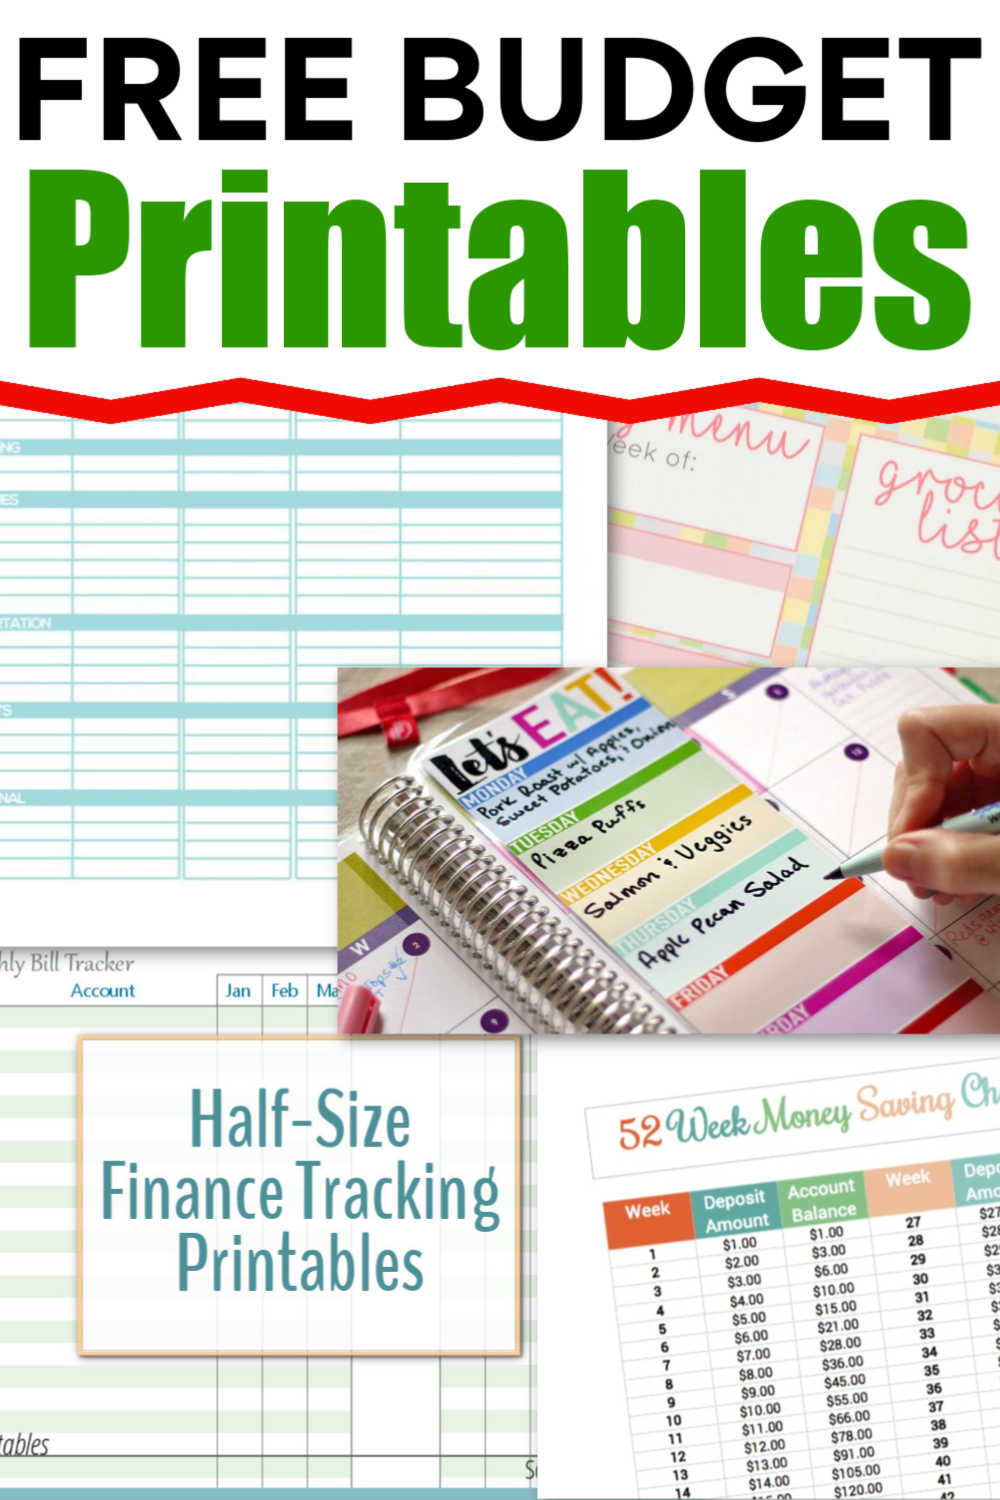 20 Free Budget Printables to Help Control Your Home Finances